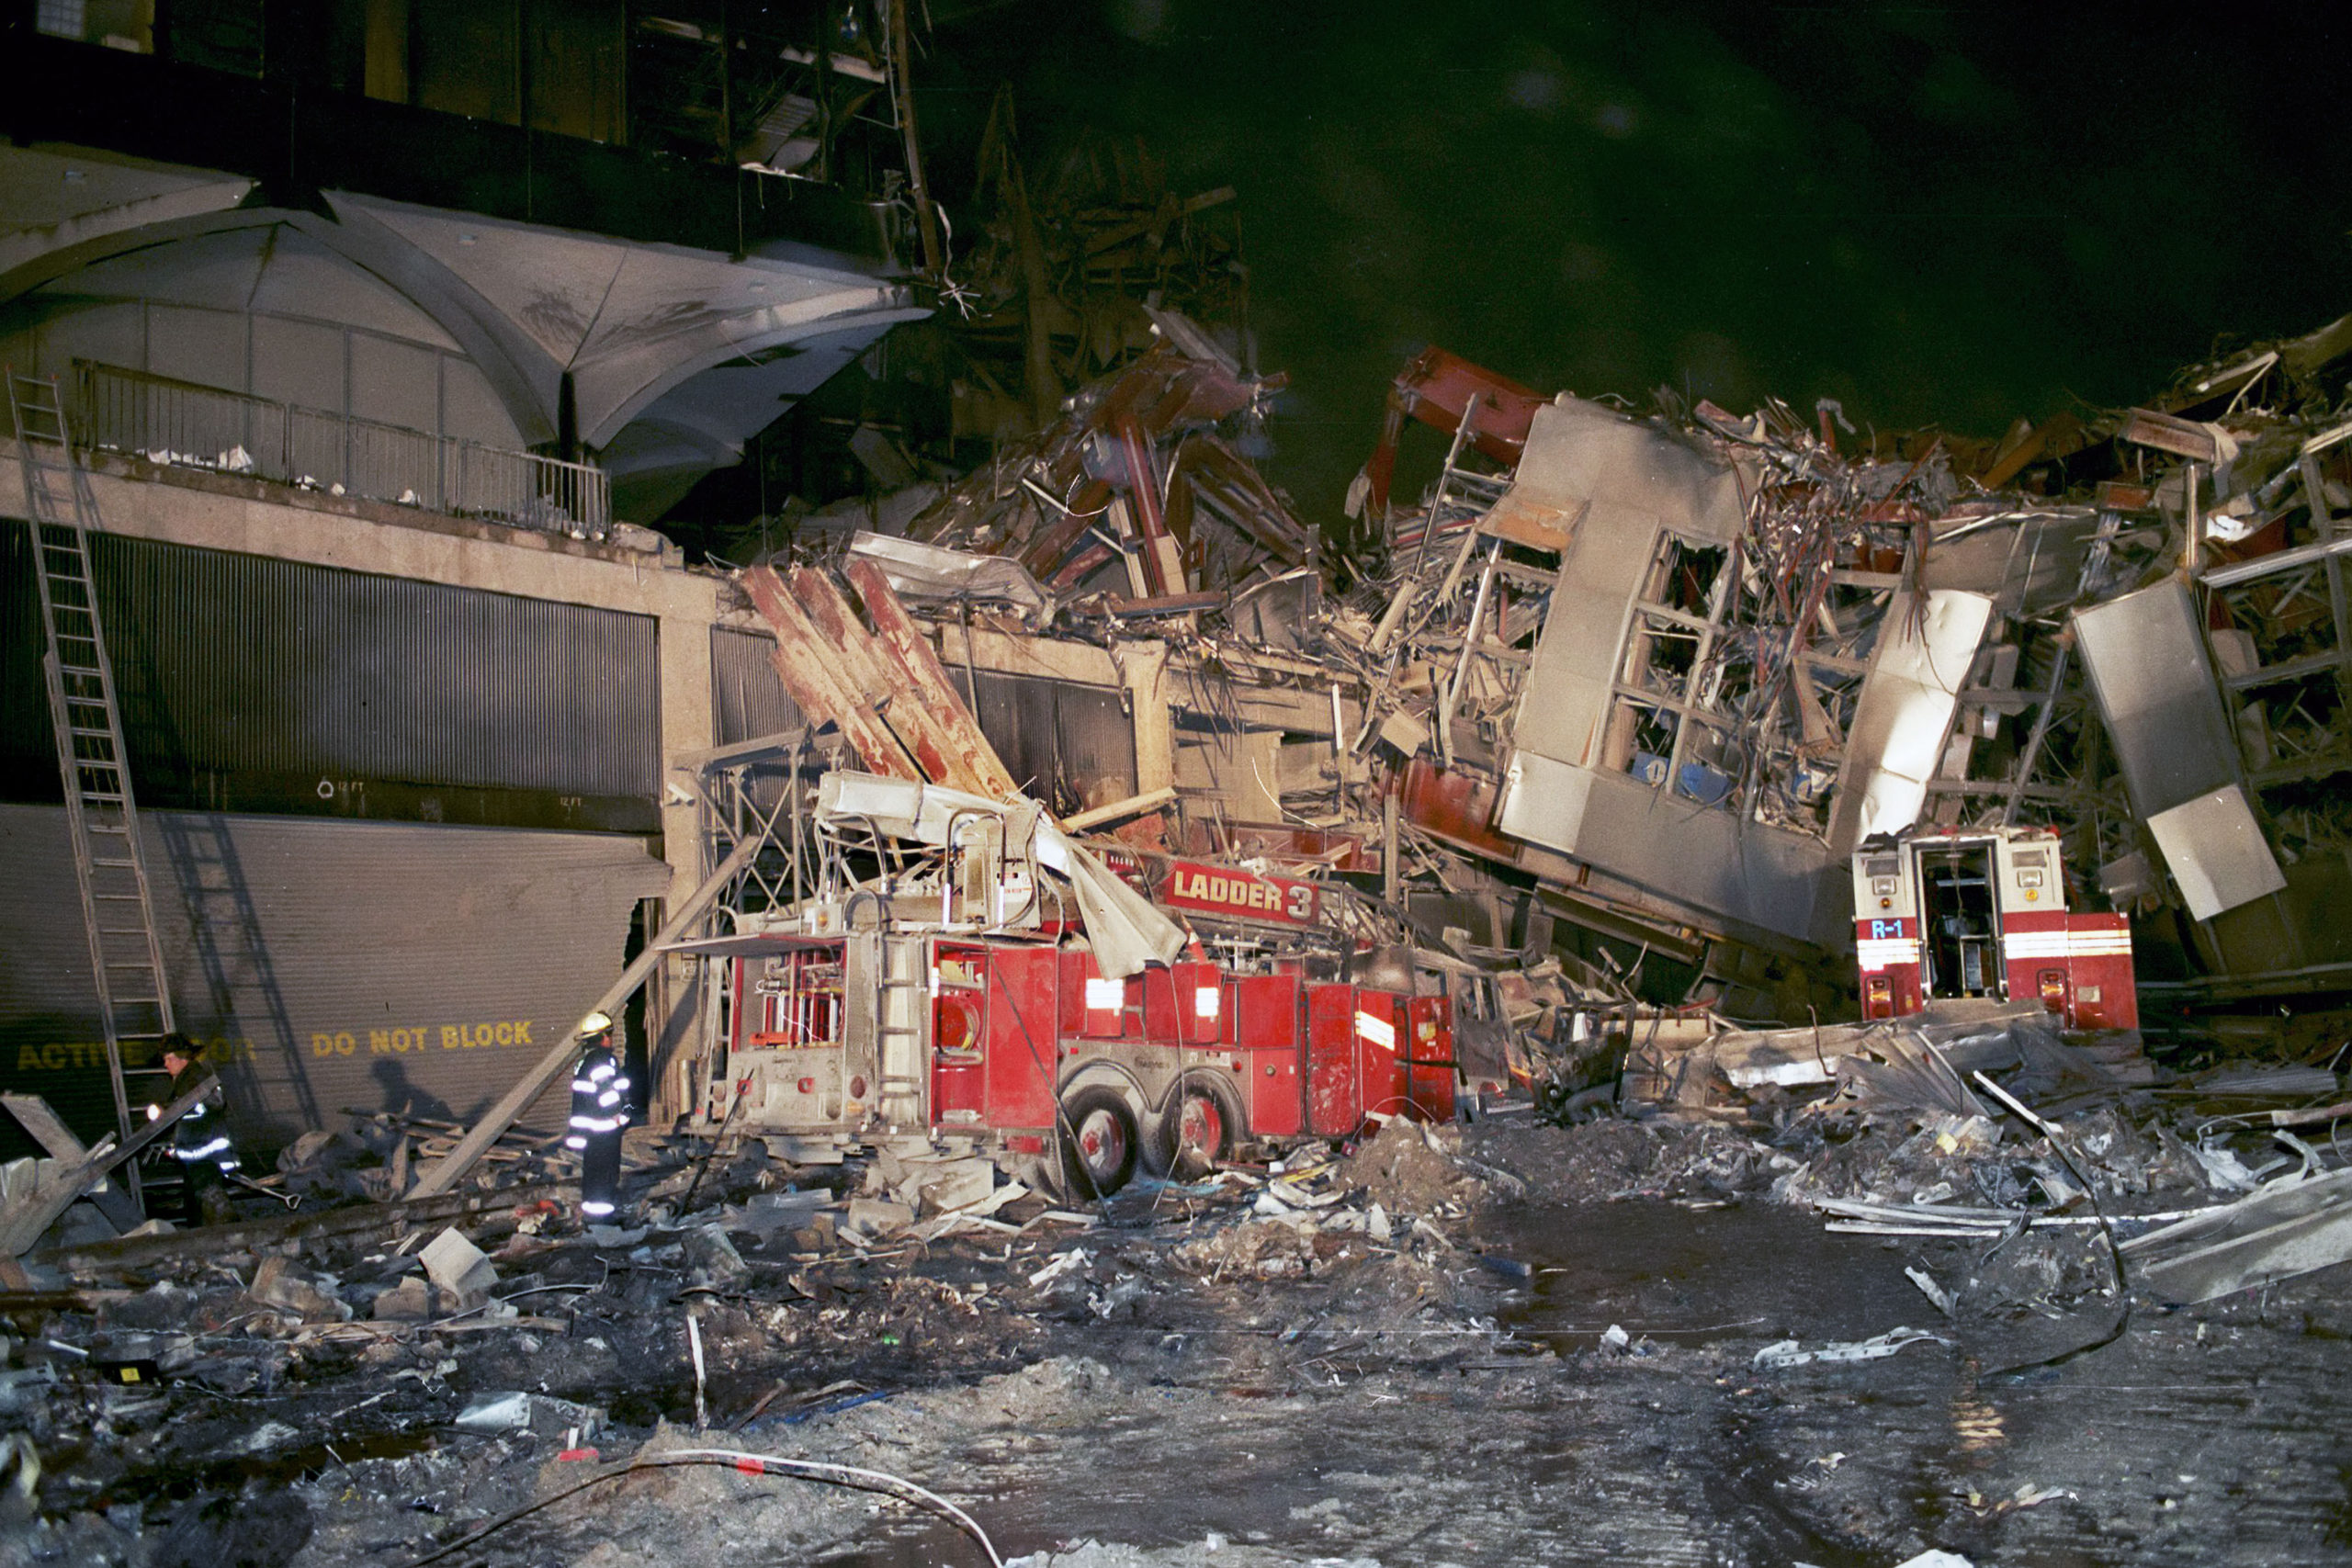 The remains of FDNY Ladder 3,FDNY Rescue 1 can also be seen at right. Photo was taken looking southeast from the main staging area at that time, which was at the intersection of West Drive and Barclay Street.   MICHAEL HELLER